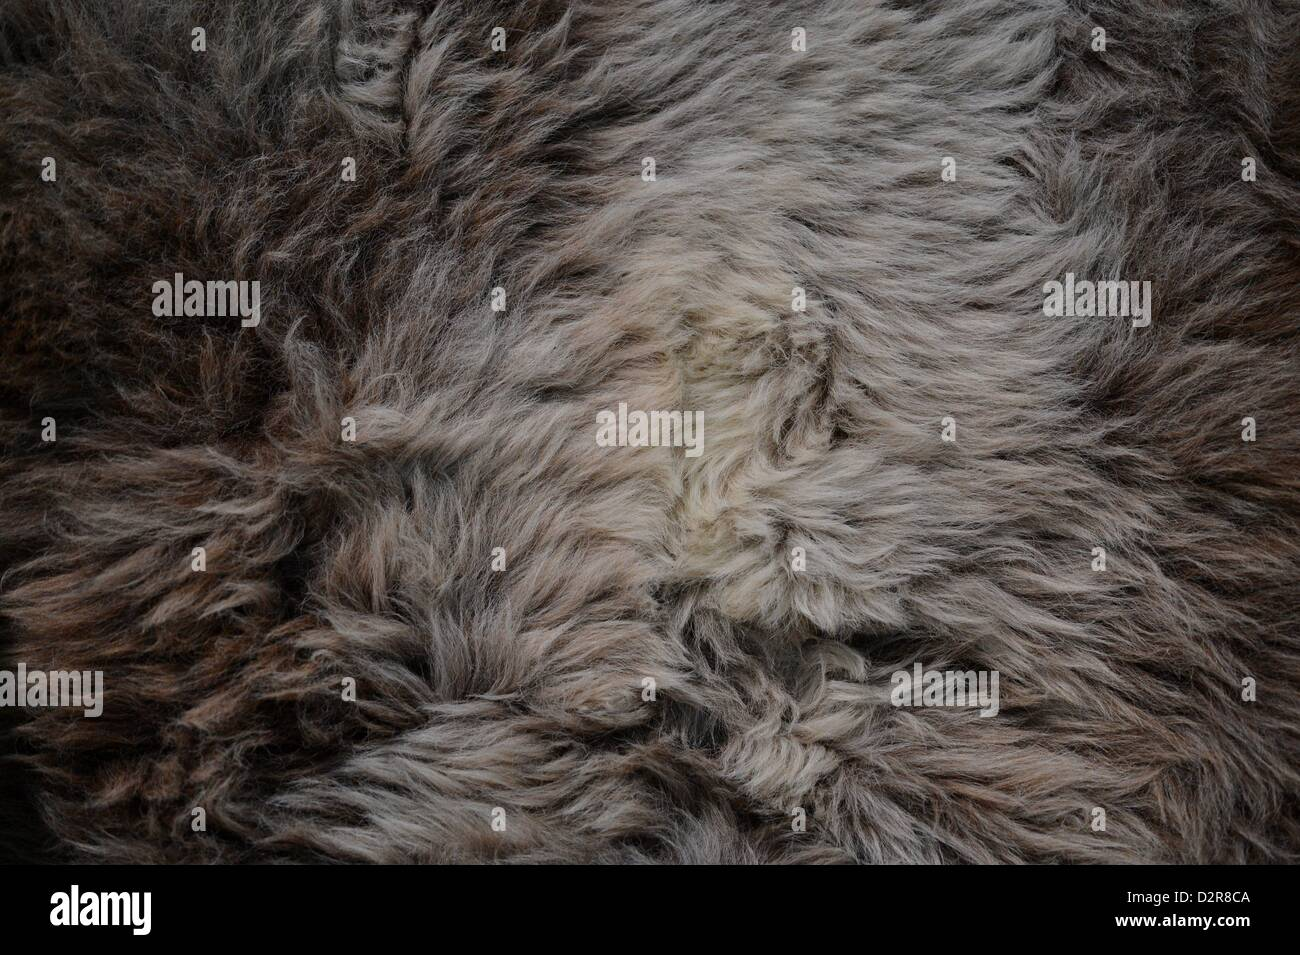 coat. Photo: Frank May - Stock Image